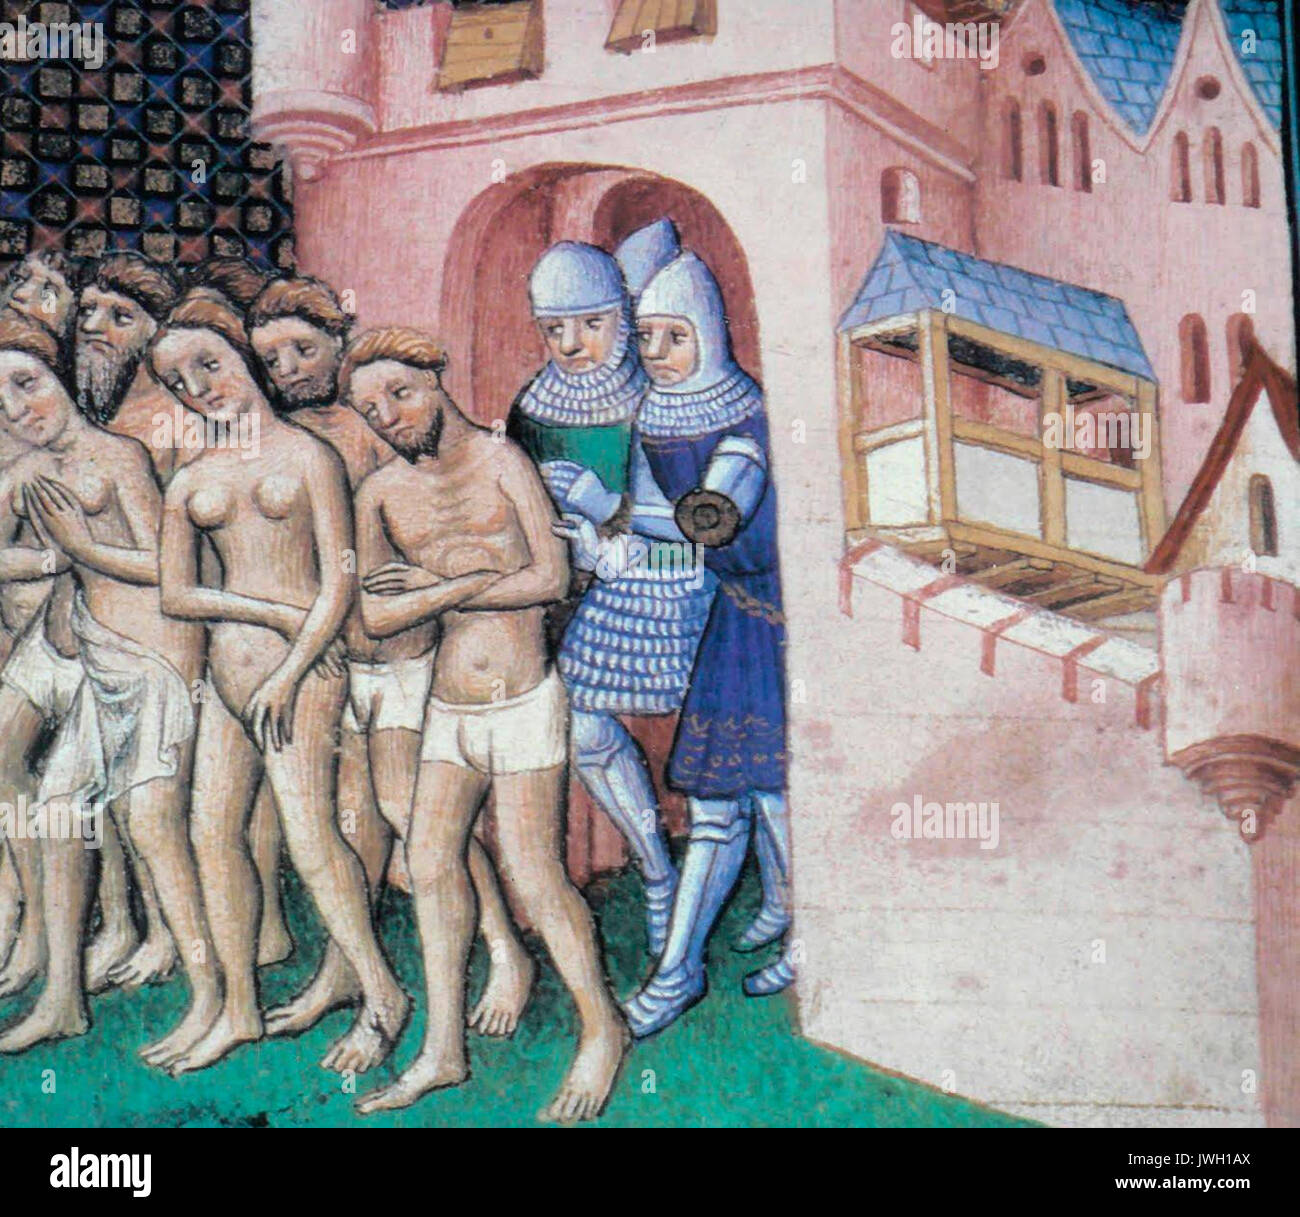 Expulsion of the inhabitants from Carcassone in 1209. Image taken from Grandes Chroniques de France. Expulsion of the Cathars, circa 1415.  Workshop of Master of Boucicaut - Stock Image